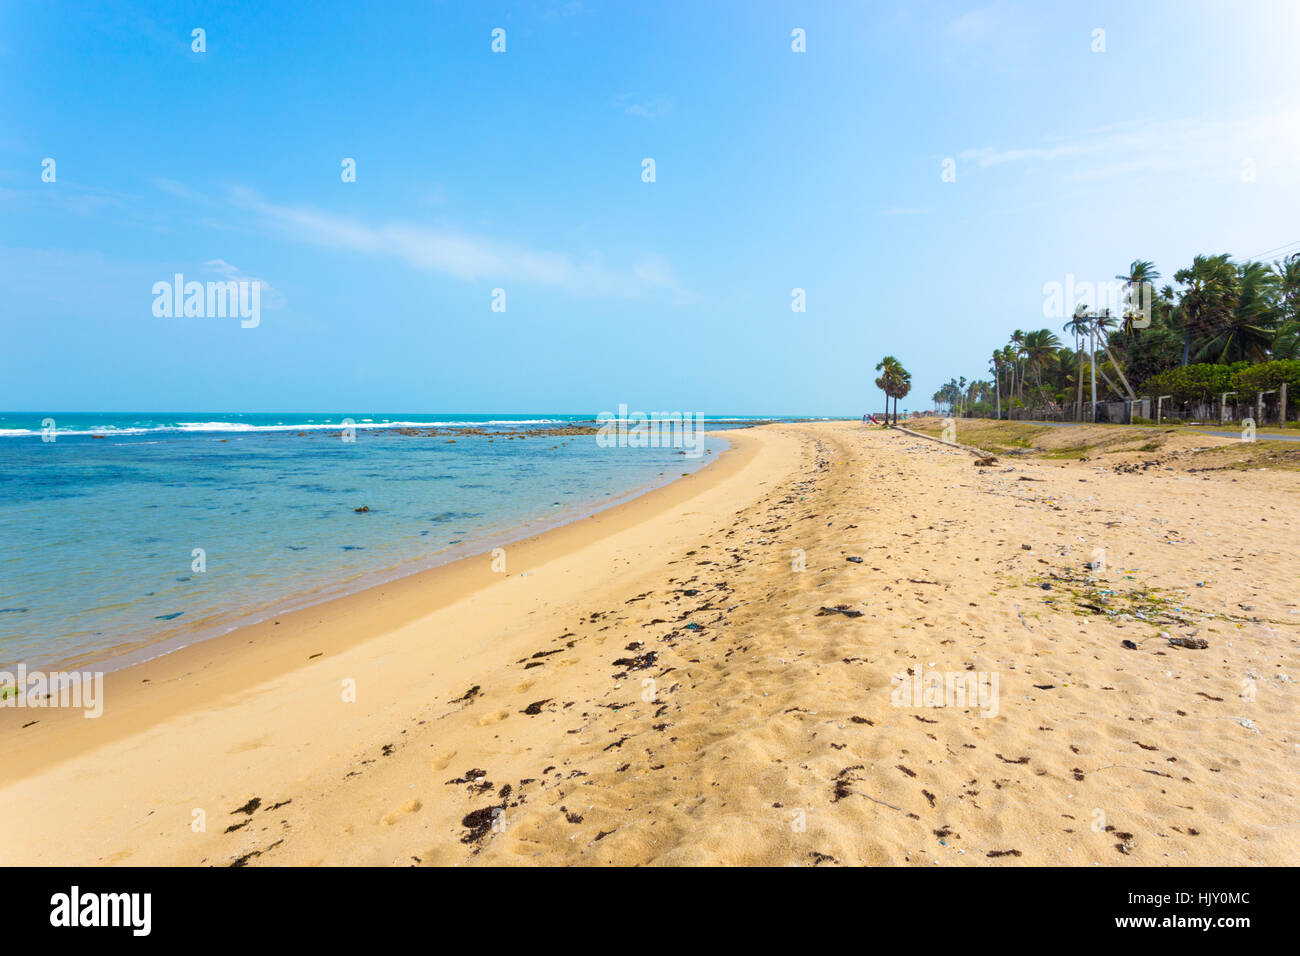 A sand beach with strewn litter seen in Point Pedro, along the northern coast of Jaffna, Sri Lanka. Horizontal - Stock Image